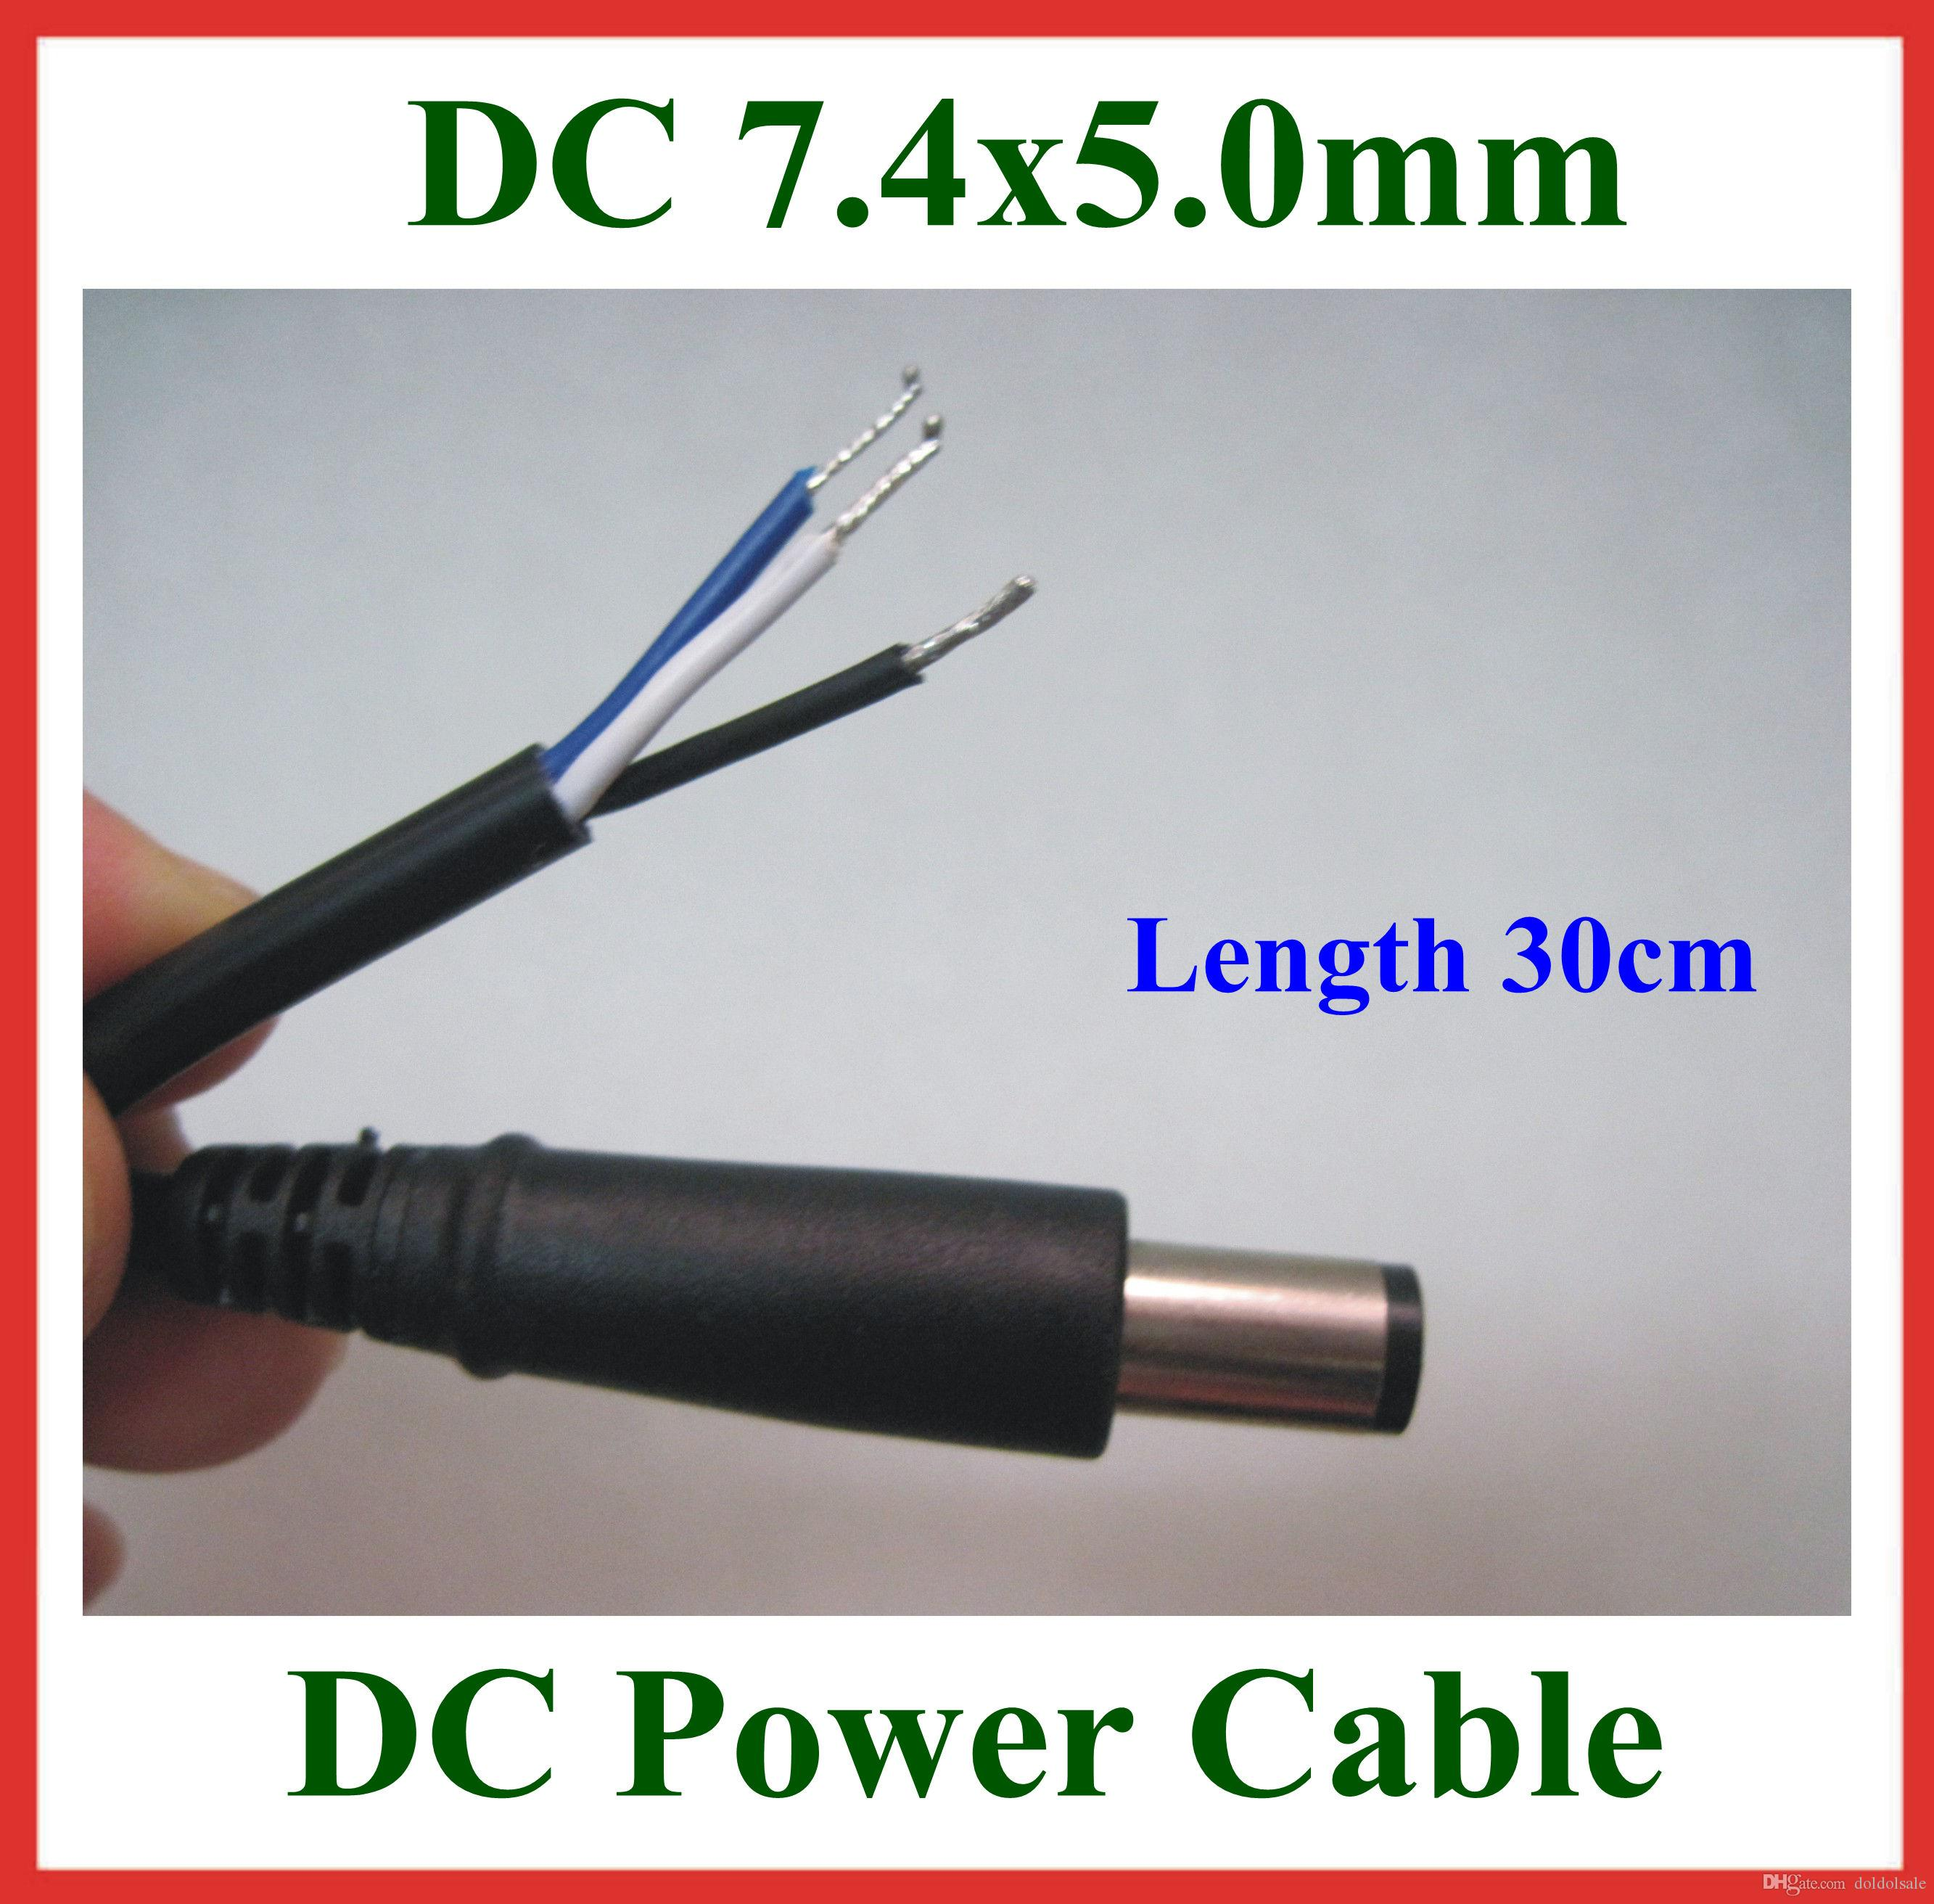 2pcs dc tip plug 7 4 5 0mm 7 4x5 0mm dc power dc tip plug 7 4*5 0mm 7 4x5 0mm dc power supply cable with pin wiring diagram for hp laptop charger at pacquiaovsvargaslive.co